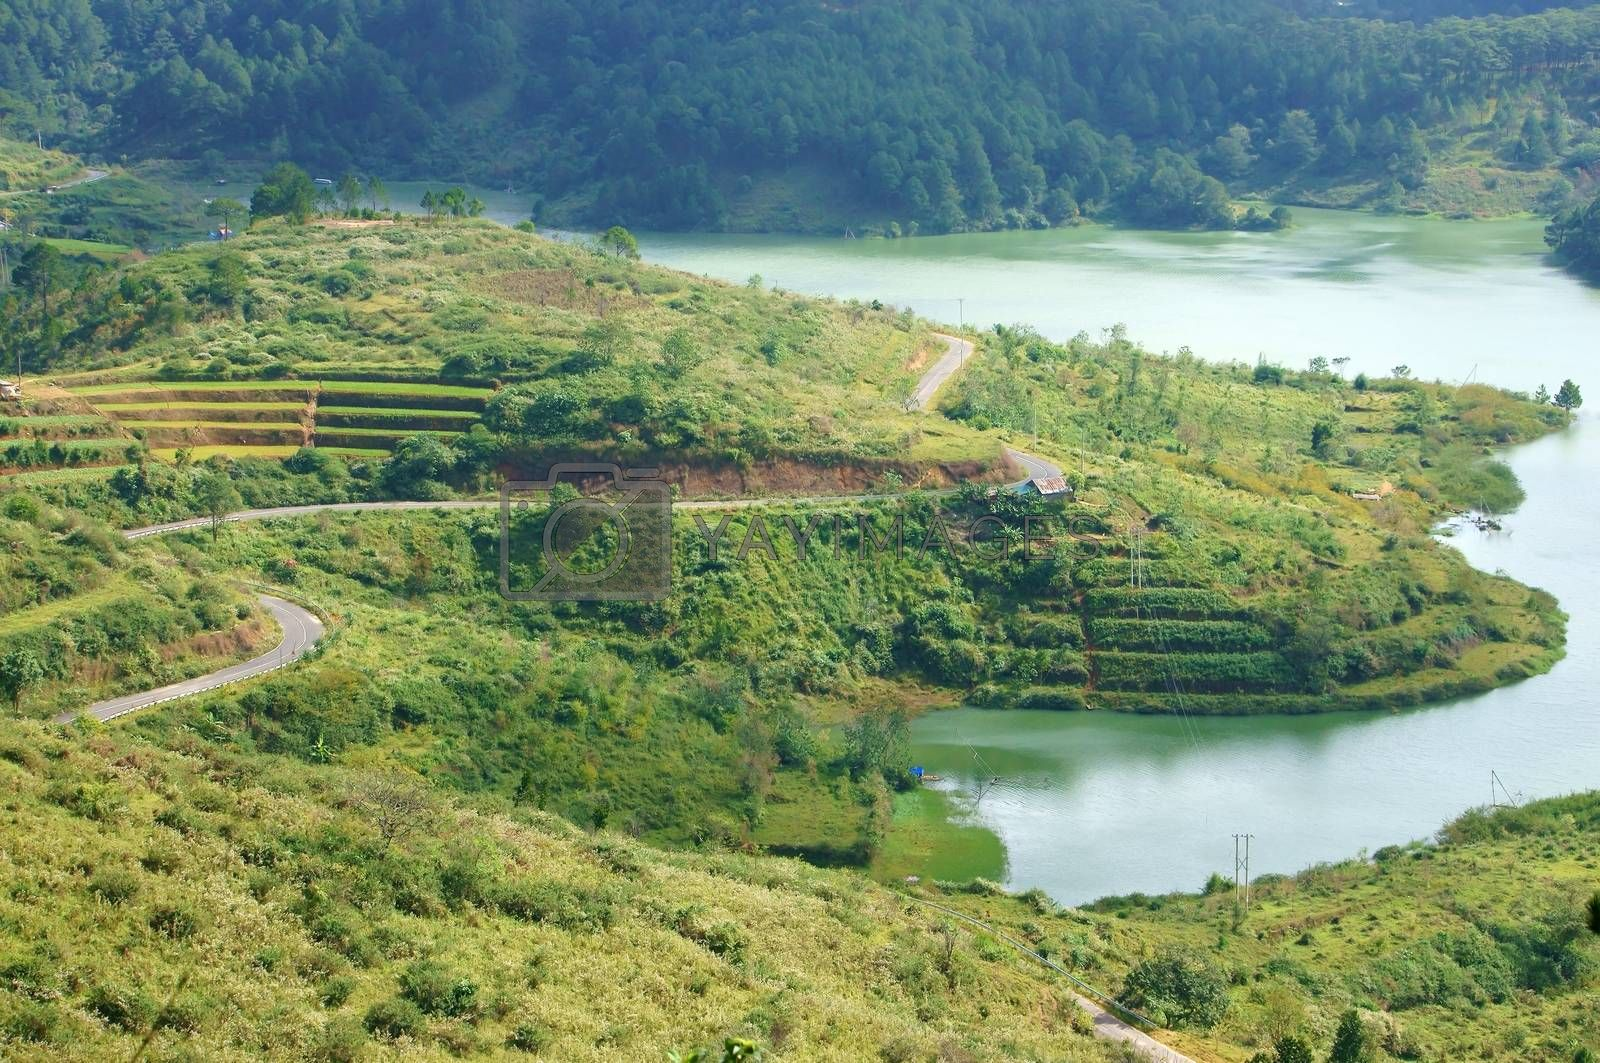 Overview of Tuyen Lam lake from mountain with pine forest, the road thourgh meadow and along the lake ,amazing landscape with mountain, lake and road